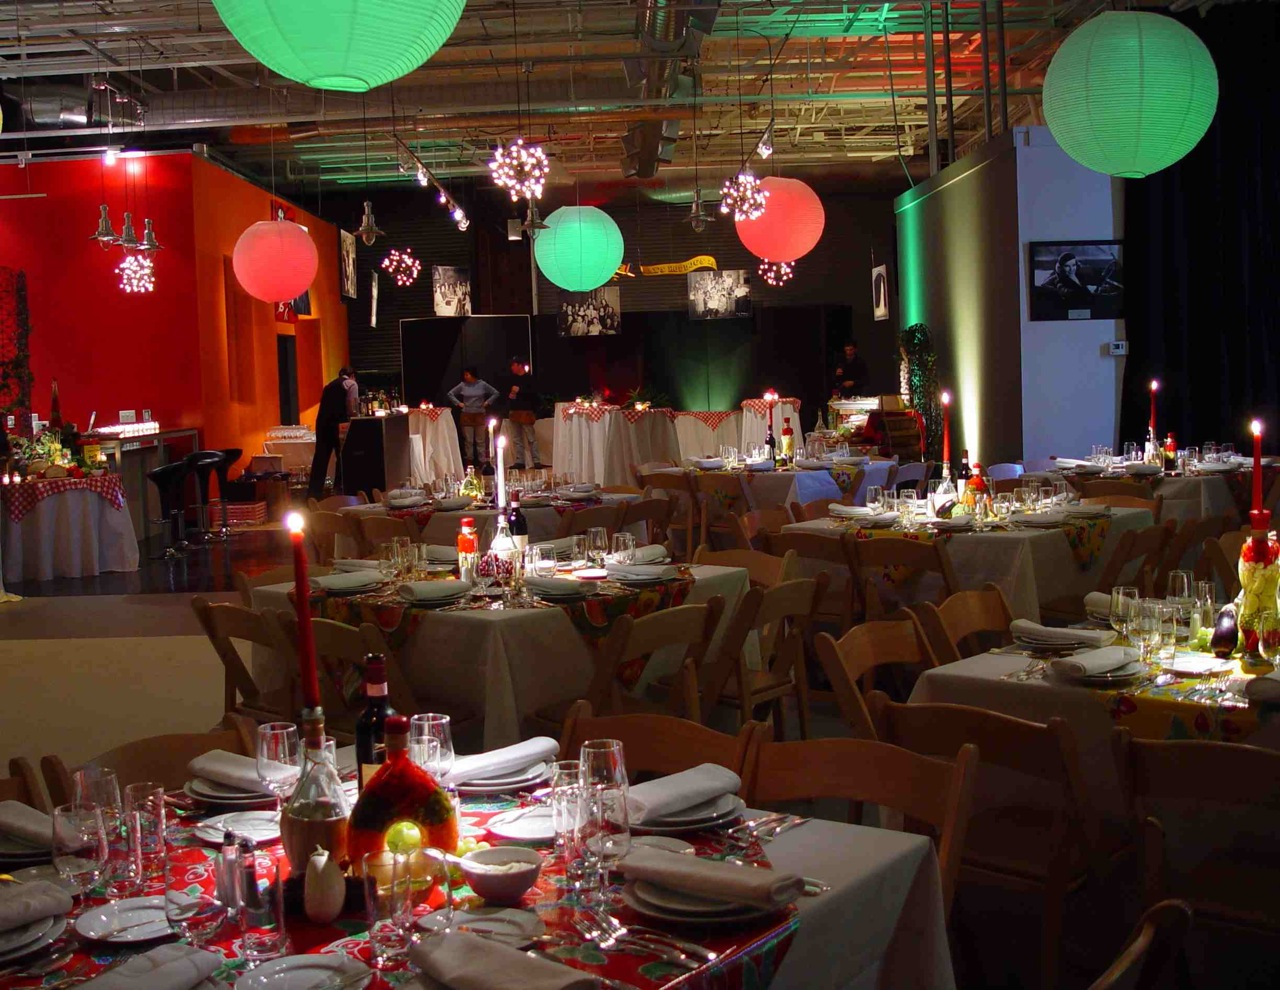 Eggsotic Events NJ NYC International Theme Party Decorations and Lighting 04.jpg